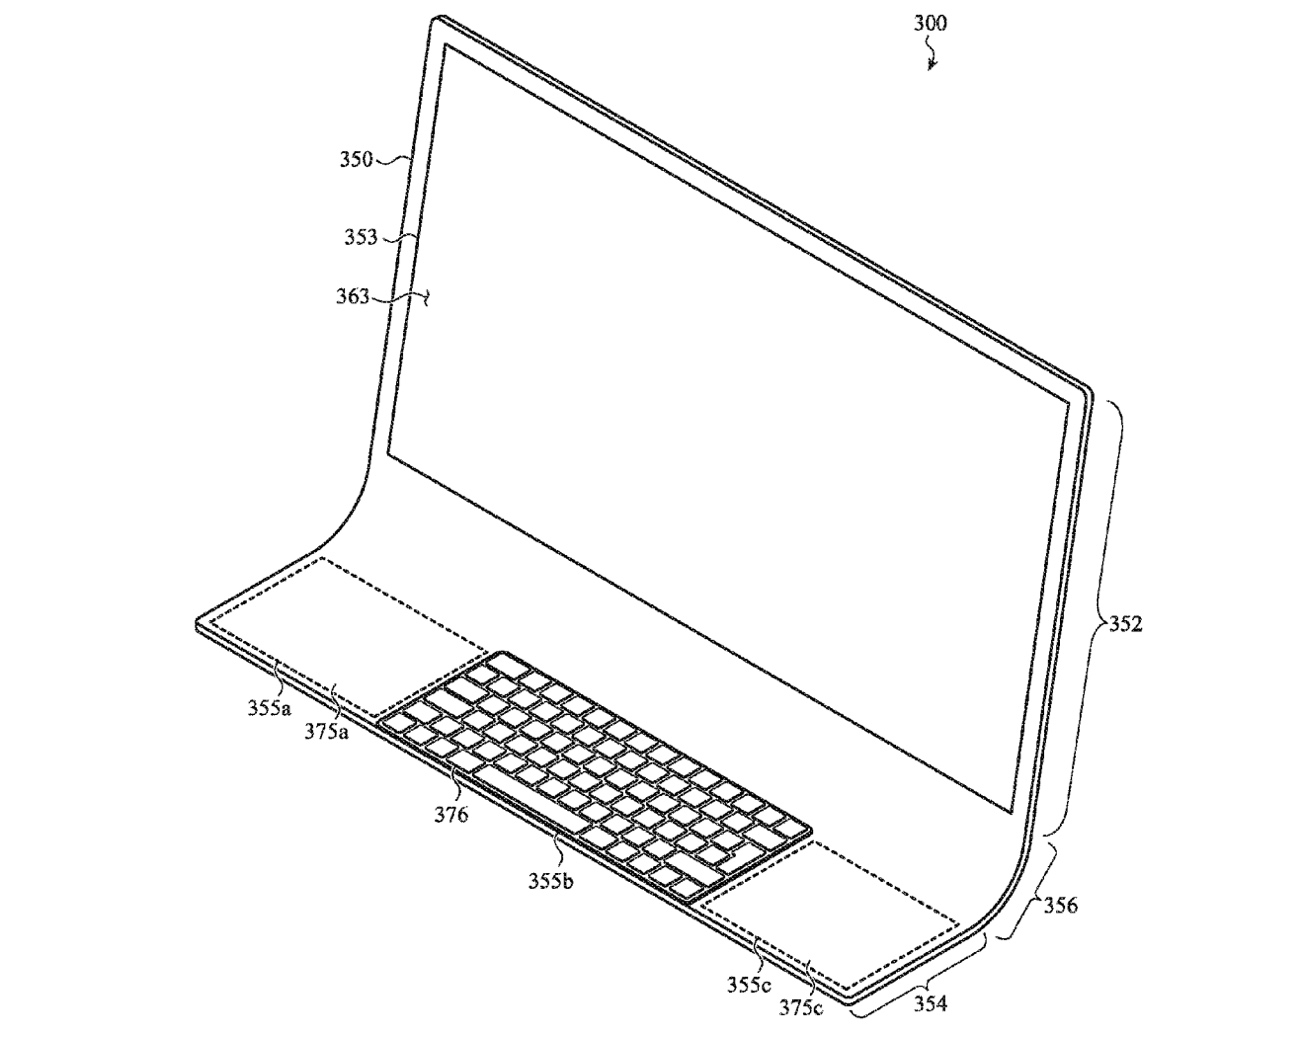 Apple Patent Imagines iMac Made From a Single Sheet of Glass - MacRumors